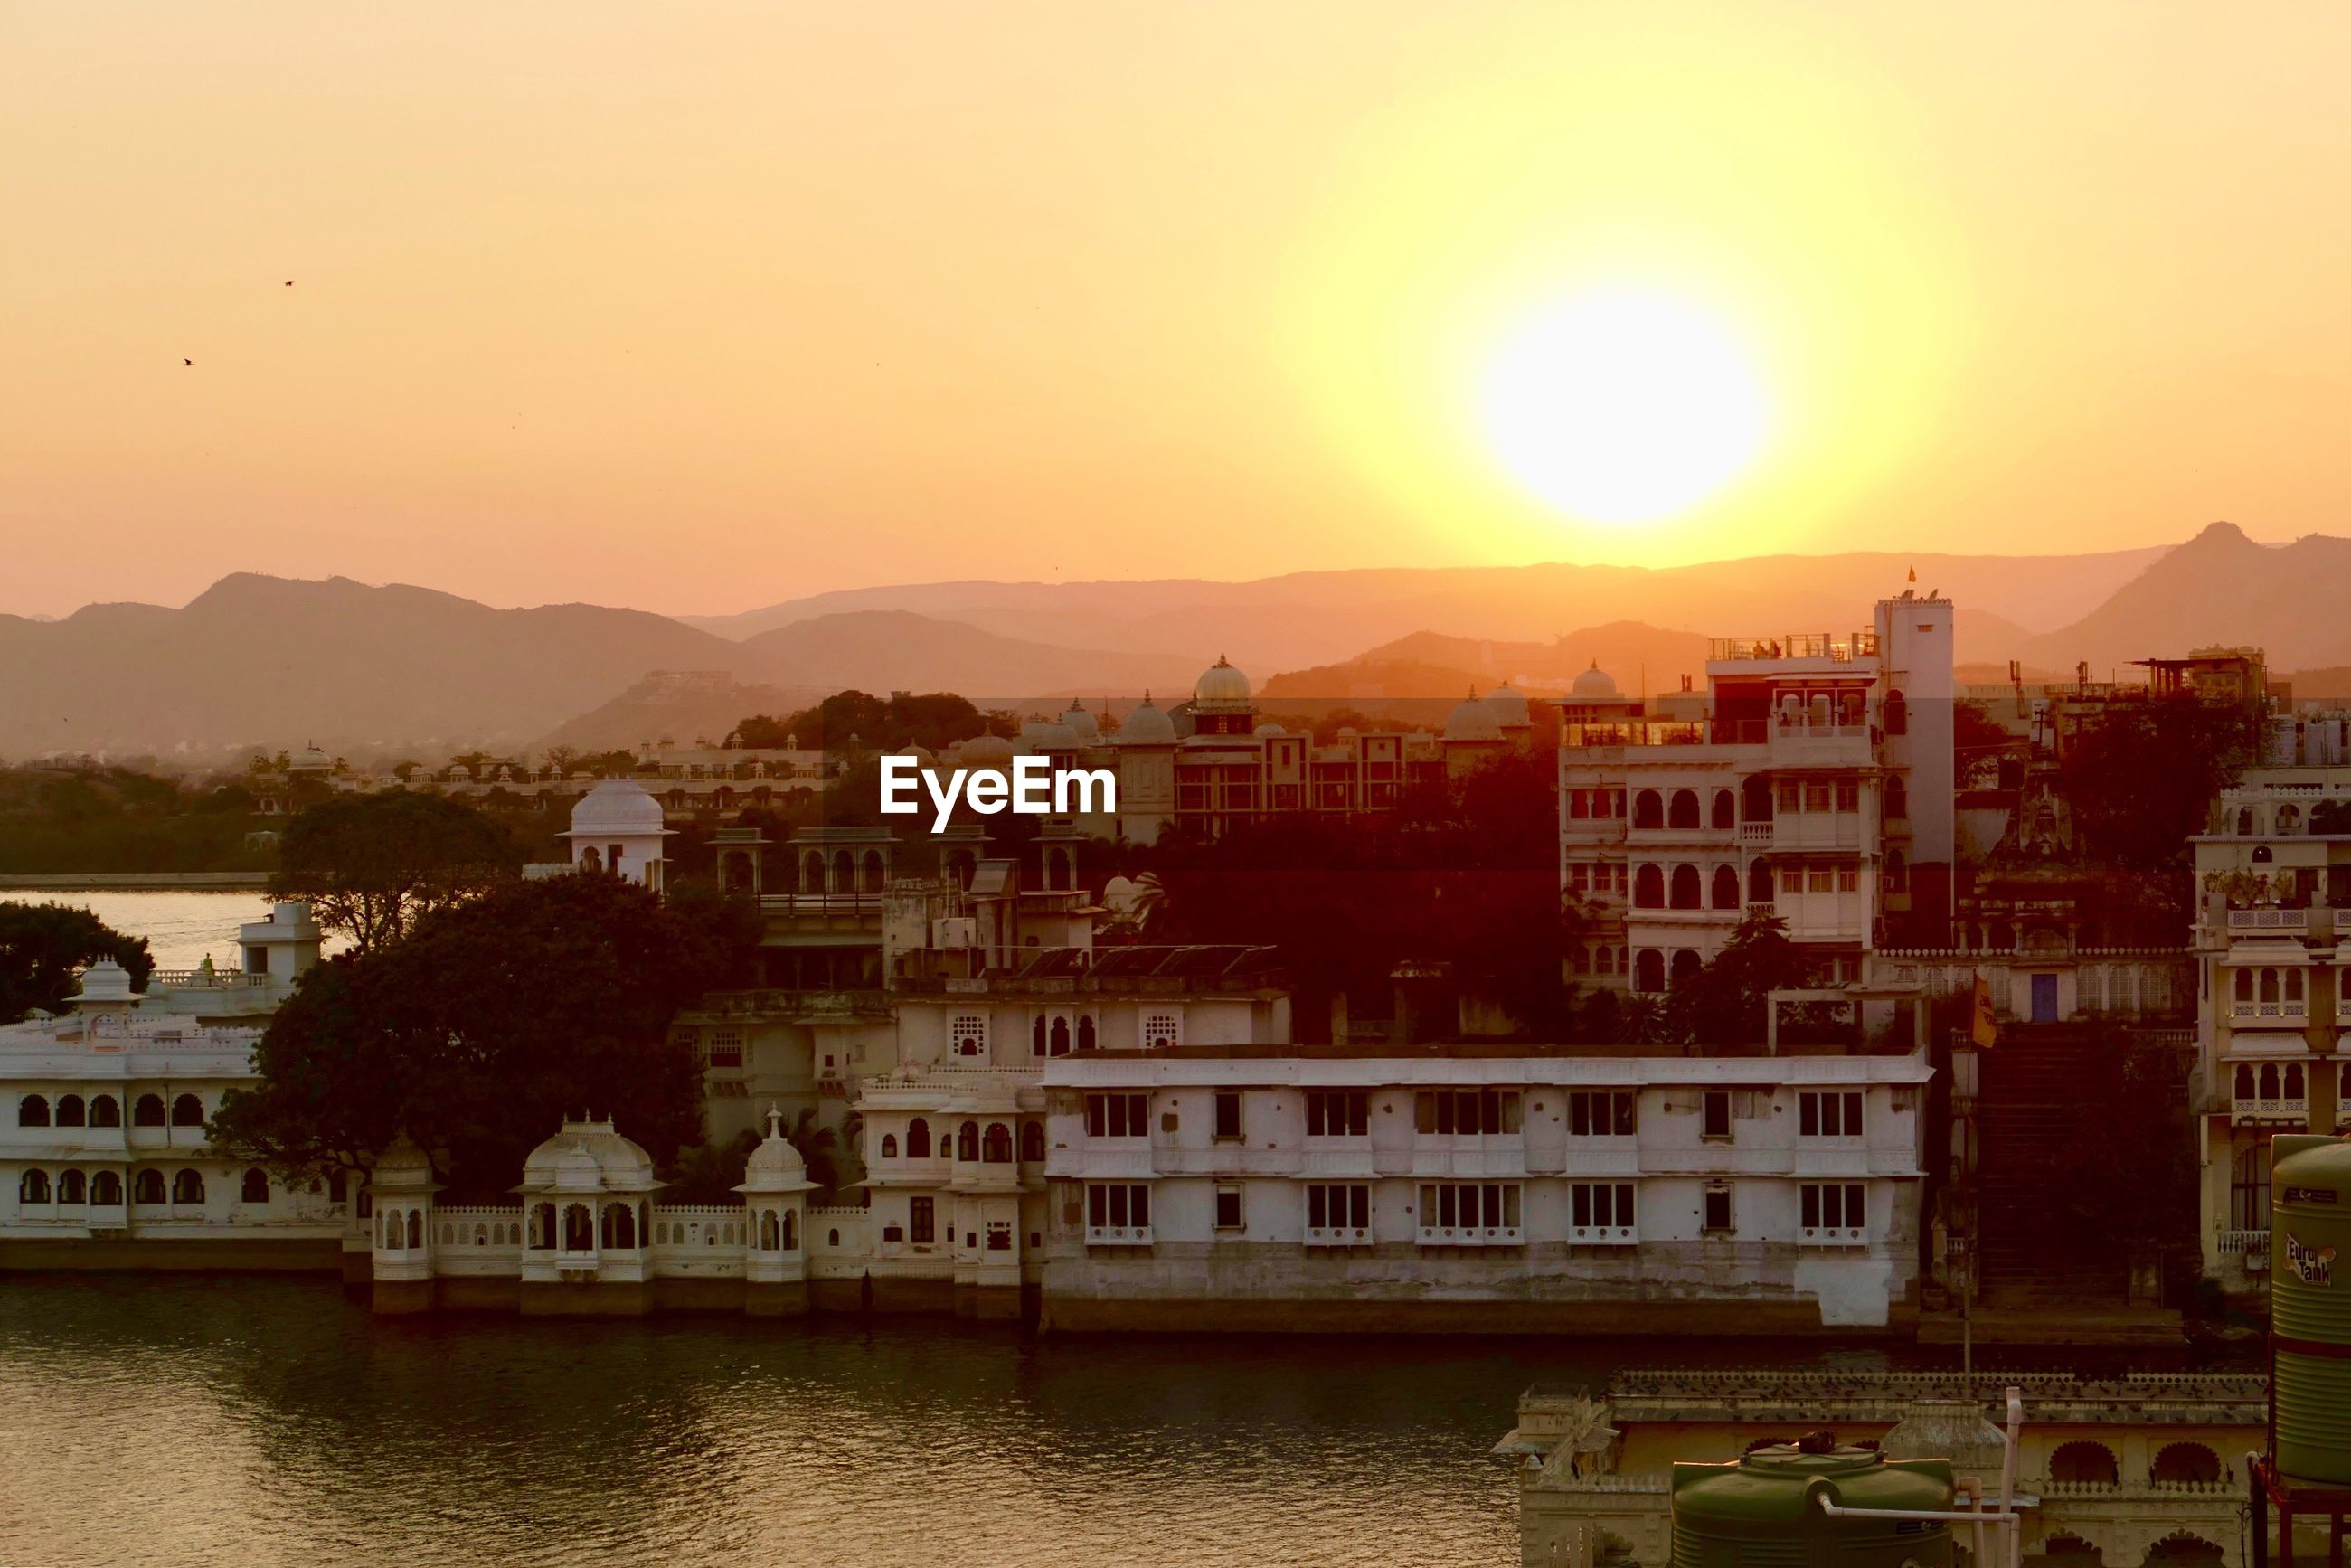 VIEW OF TOWNSCAPE BY RIVER AGAINST SKY DURING SUNSET